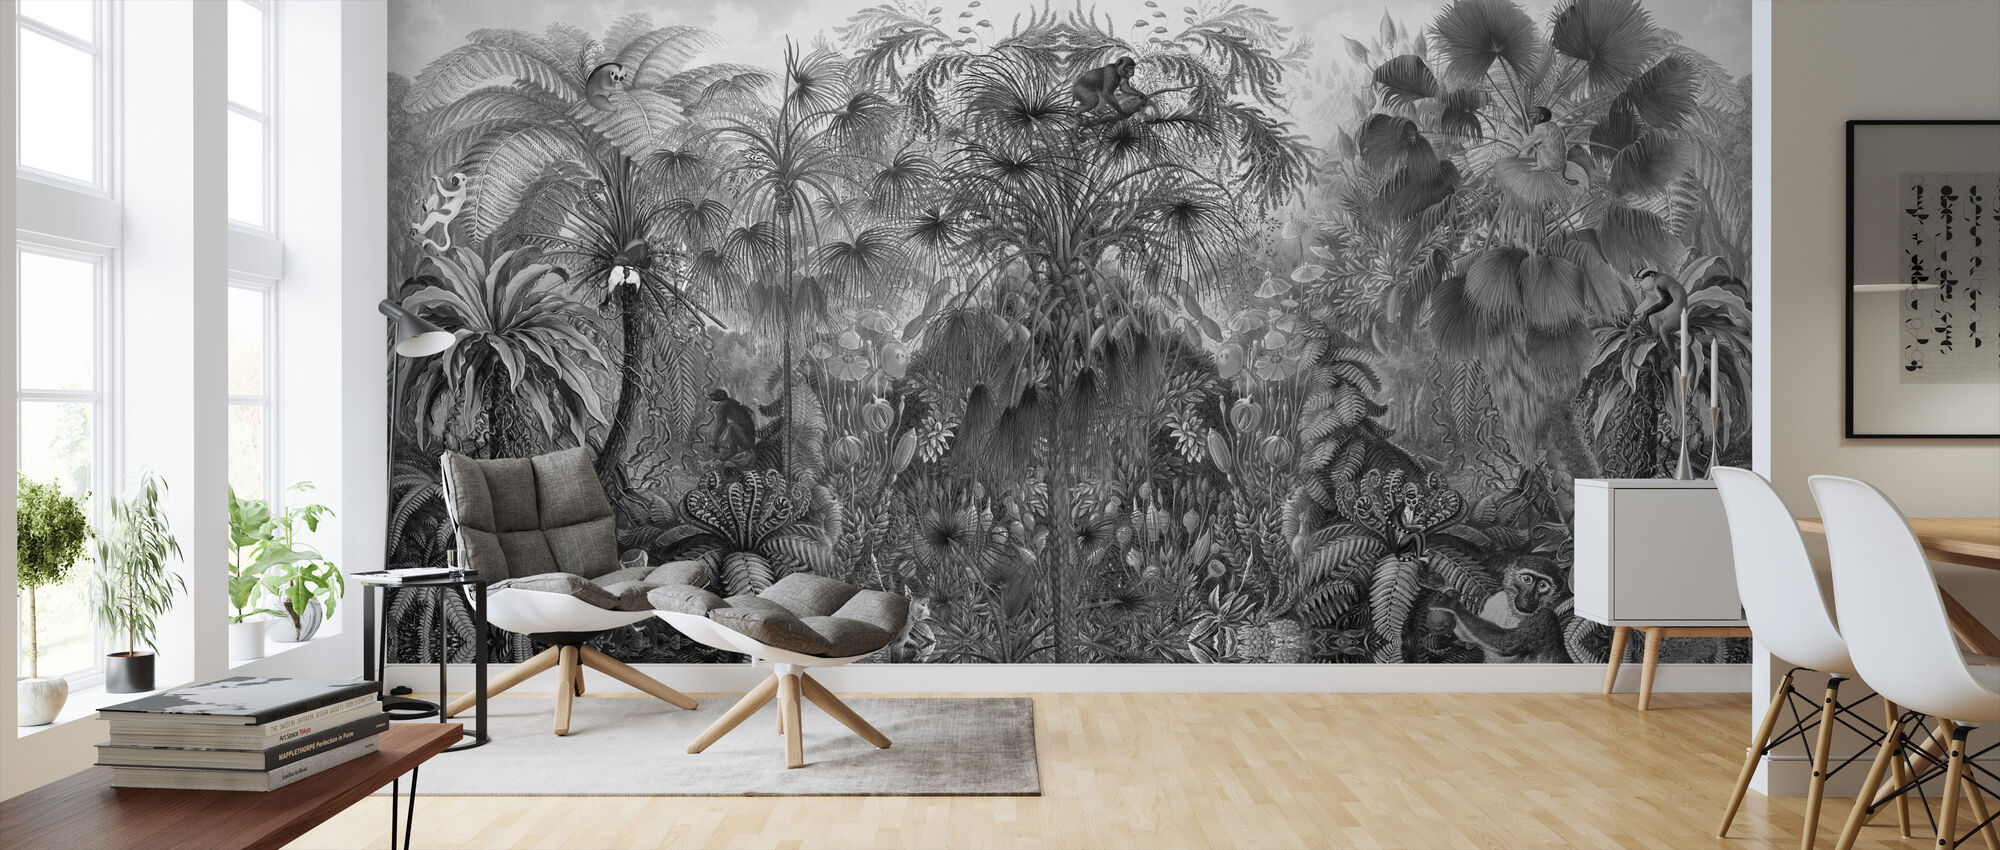 Monkey See Monkey - Wallpaper - Living Room